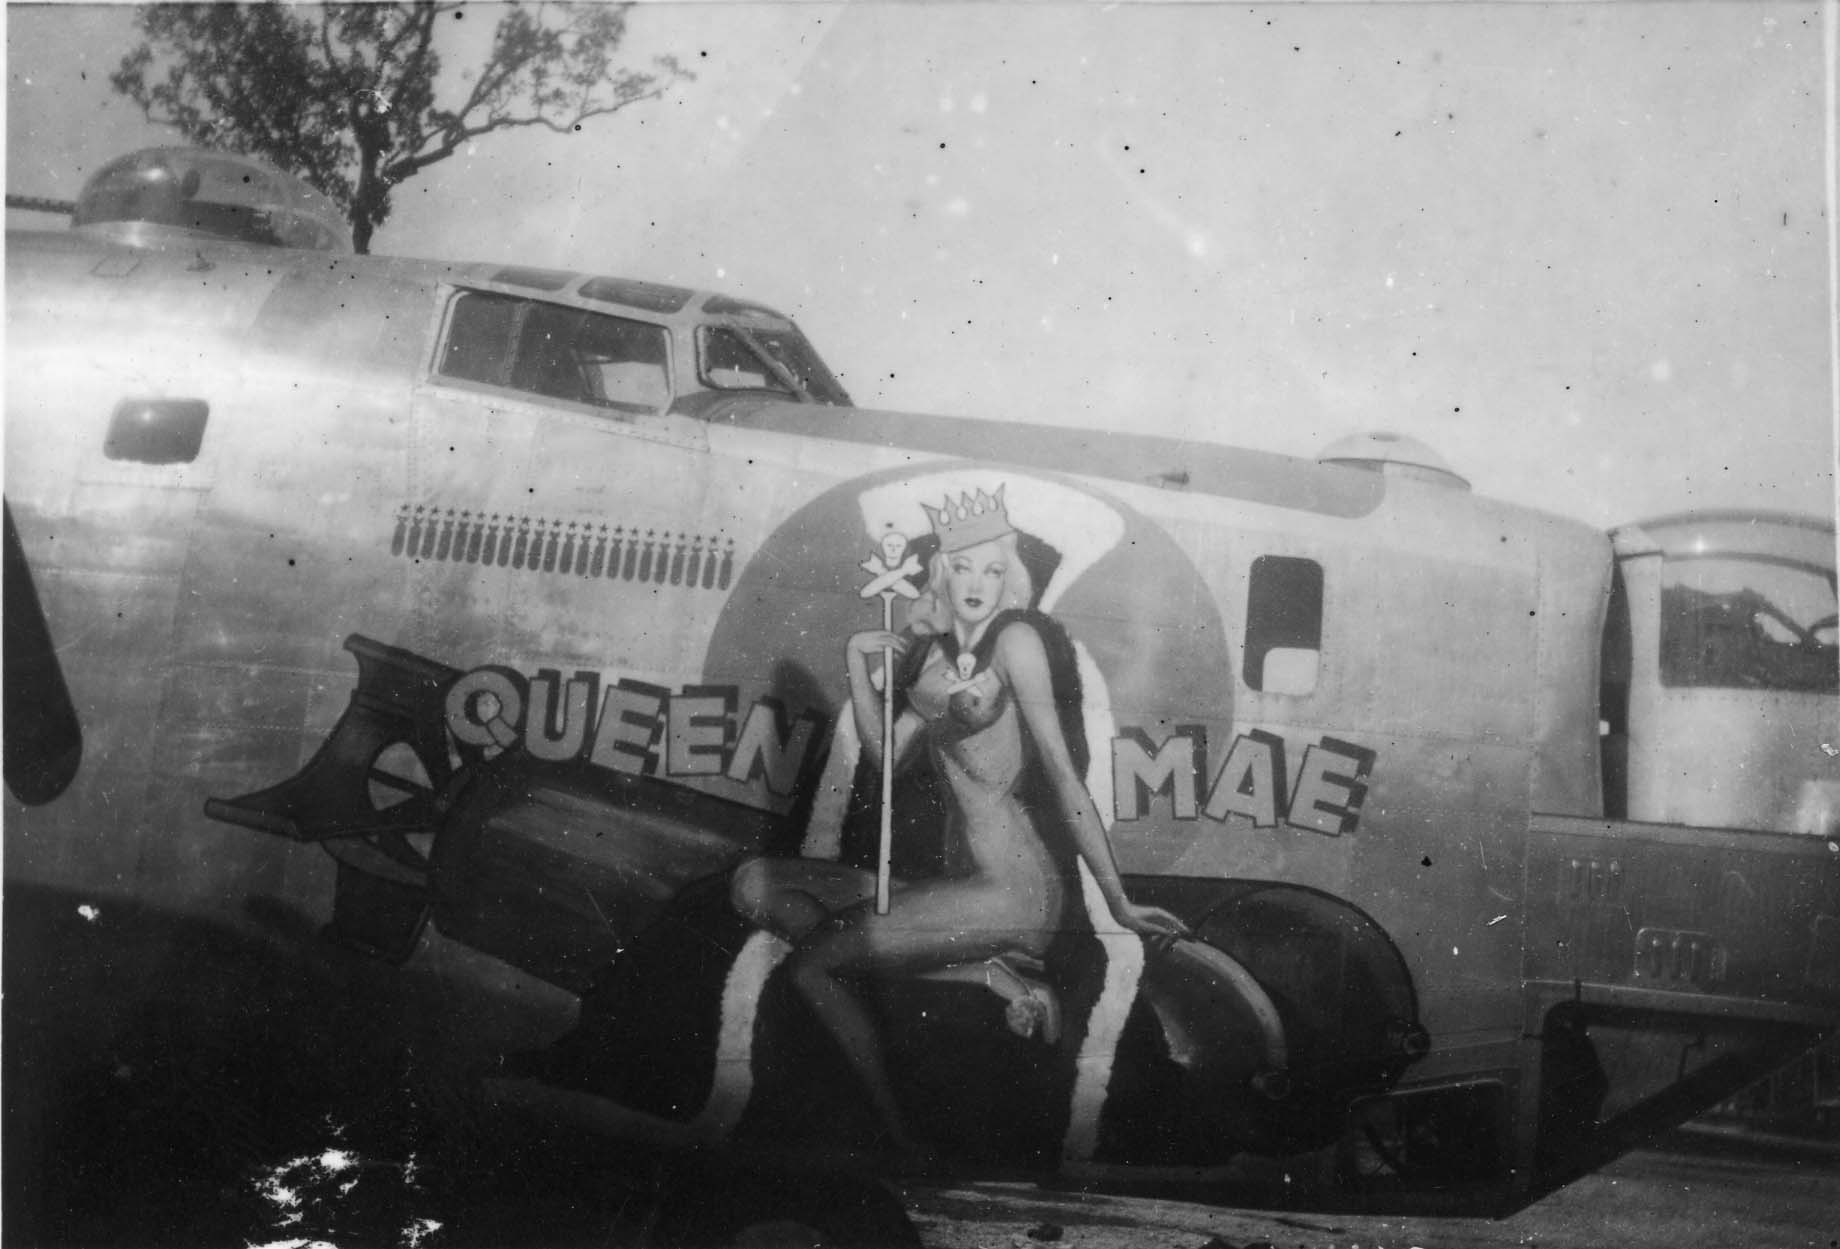 Queen Mae - B24D - 90th Bomb Group - 319th Squadron - Serial #44-40337 - Sharpe 27 (Thomas Sharpe Collection)